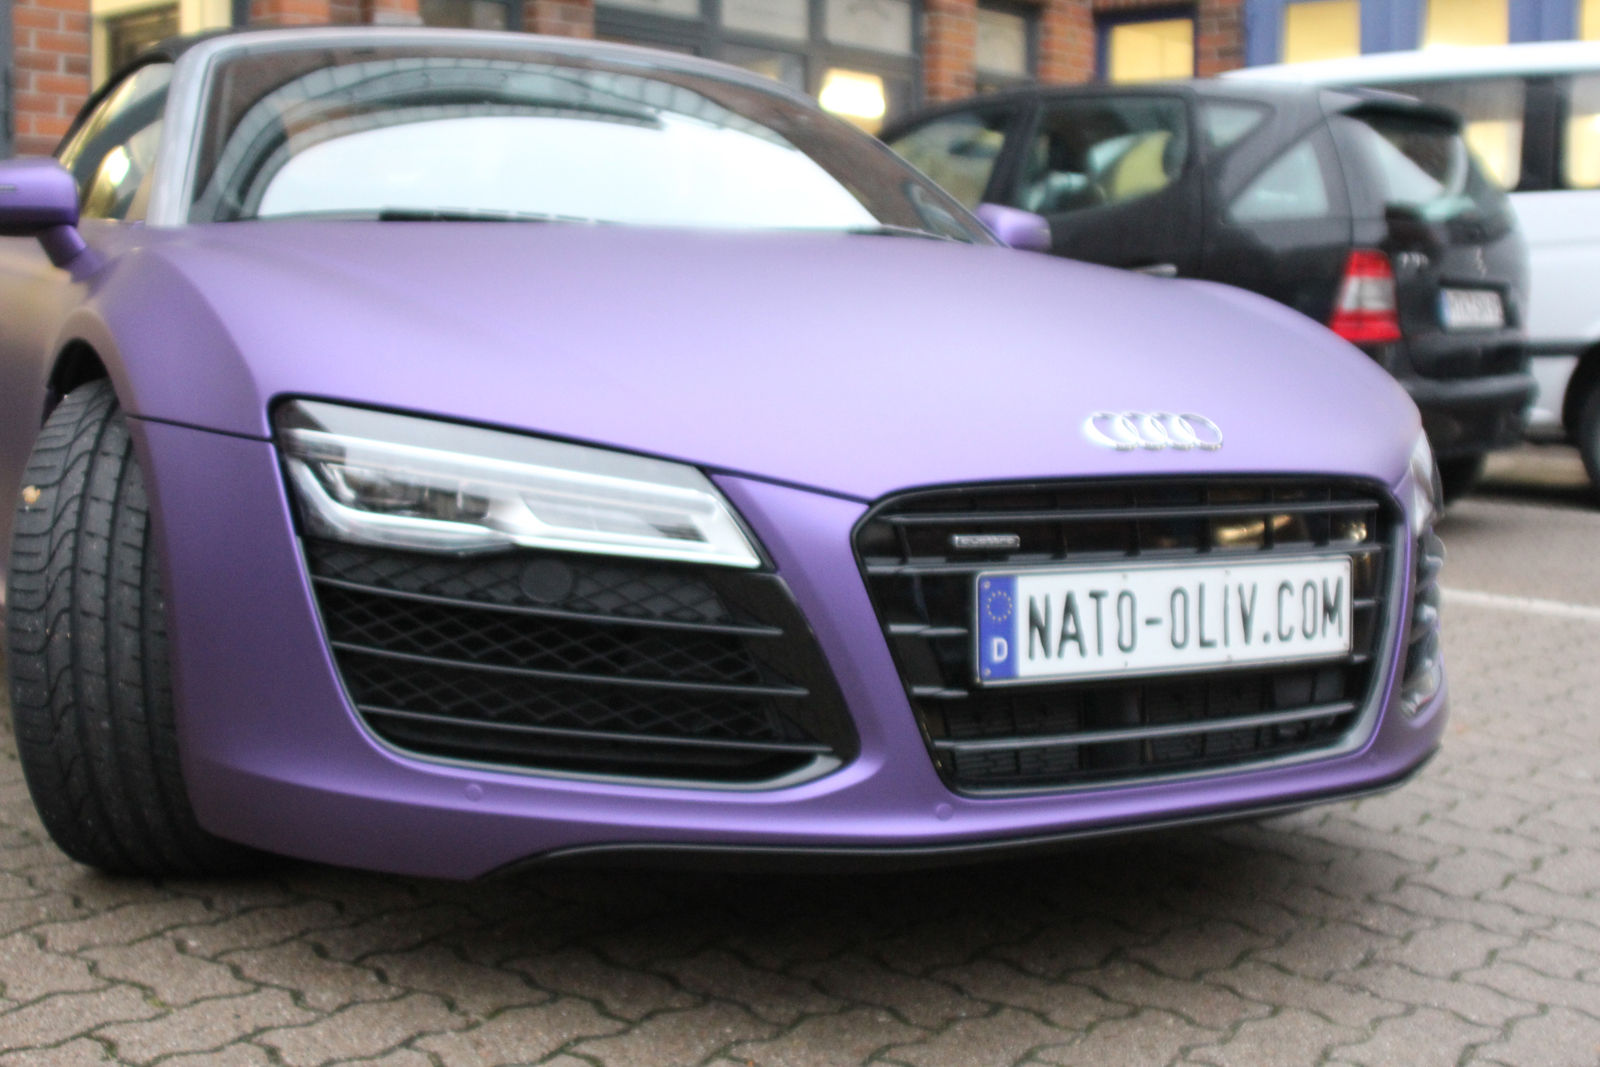 AUDI_R8_PURPLE_MATT_METALLIC_CAR-WRAPPING_10